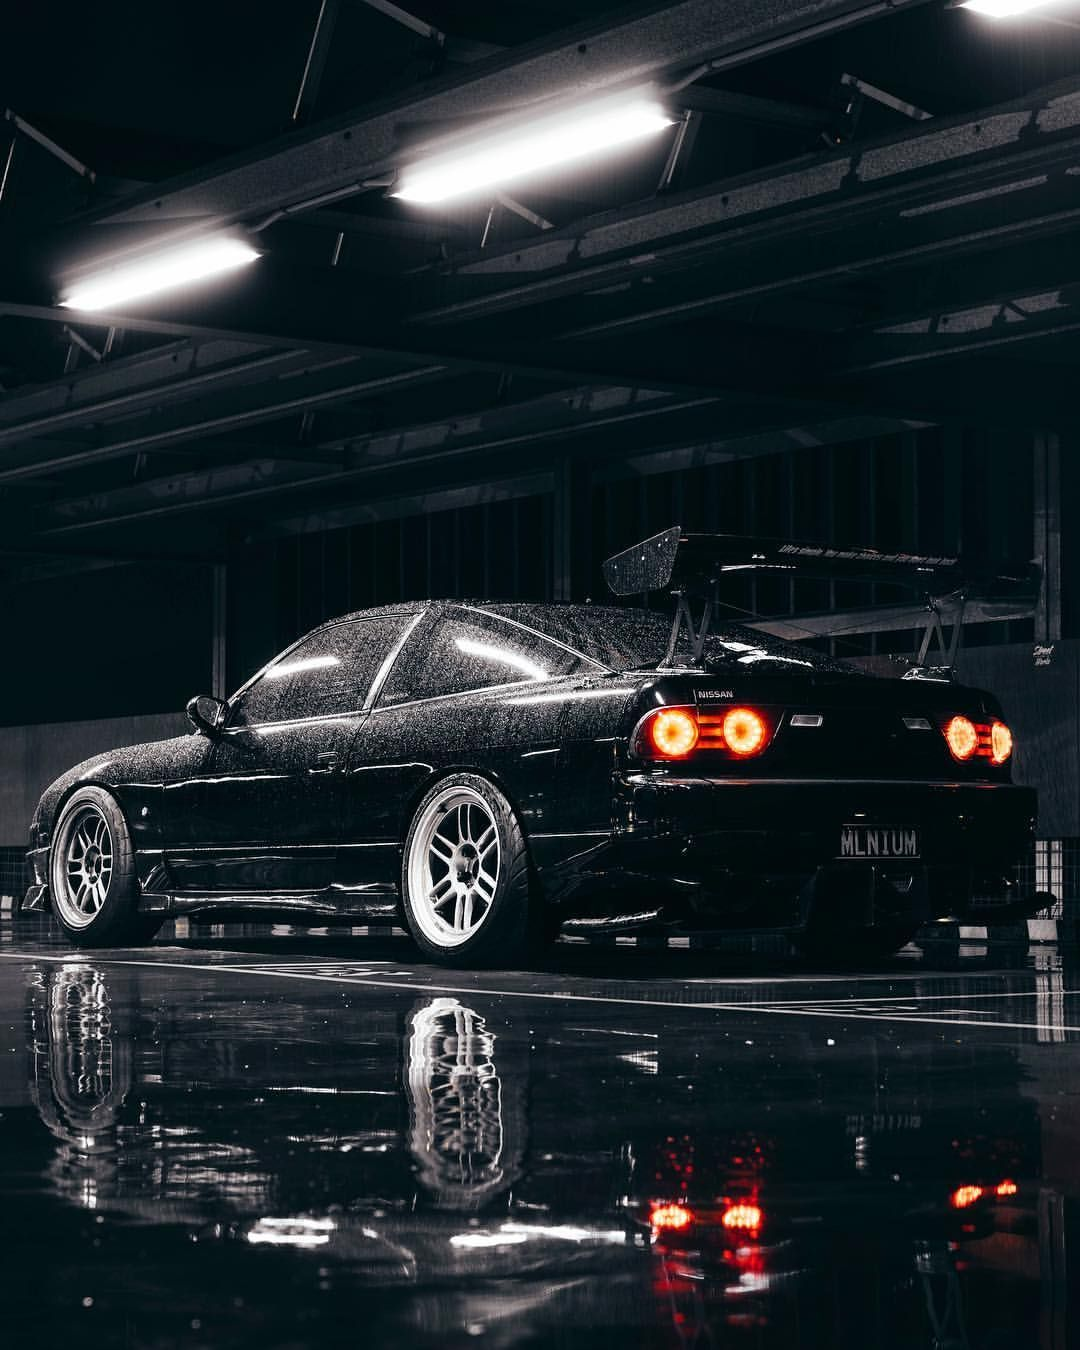 Jdm Night Wallpapers Top Free Jdm Night Backgrounds Wallpaperaccess